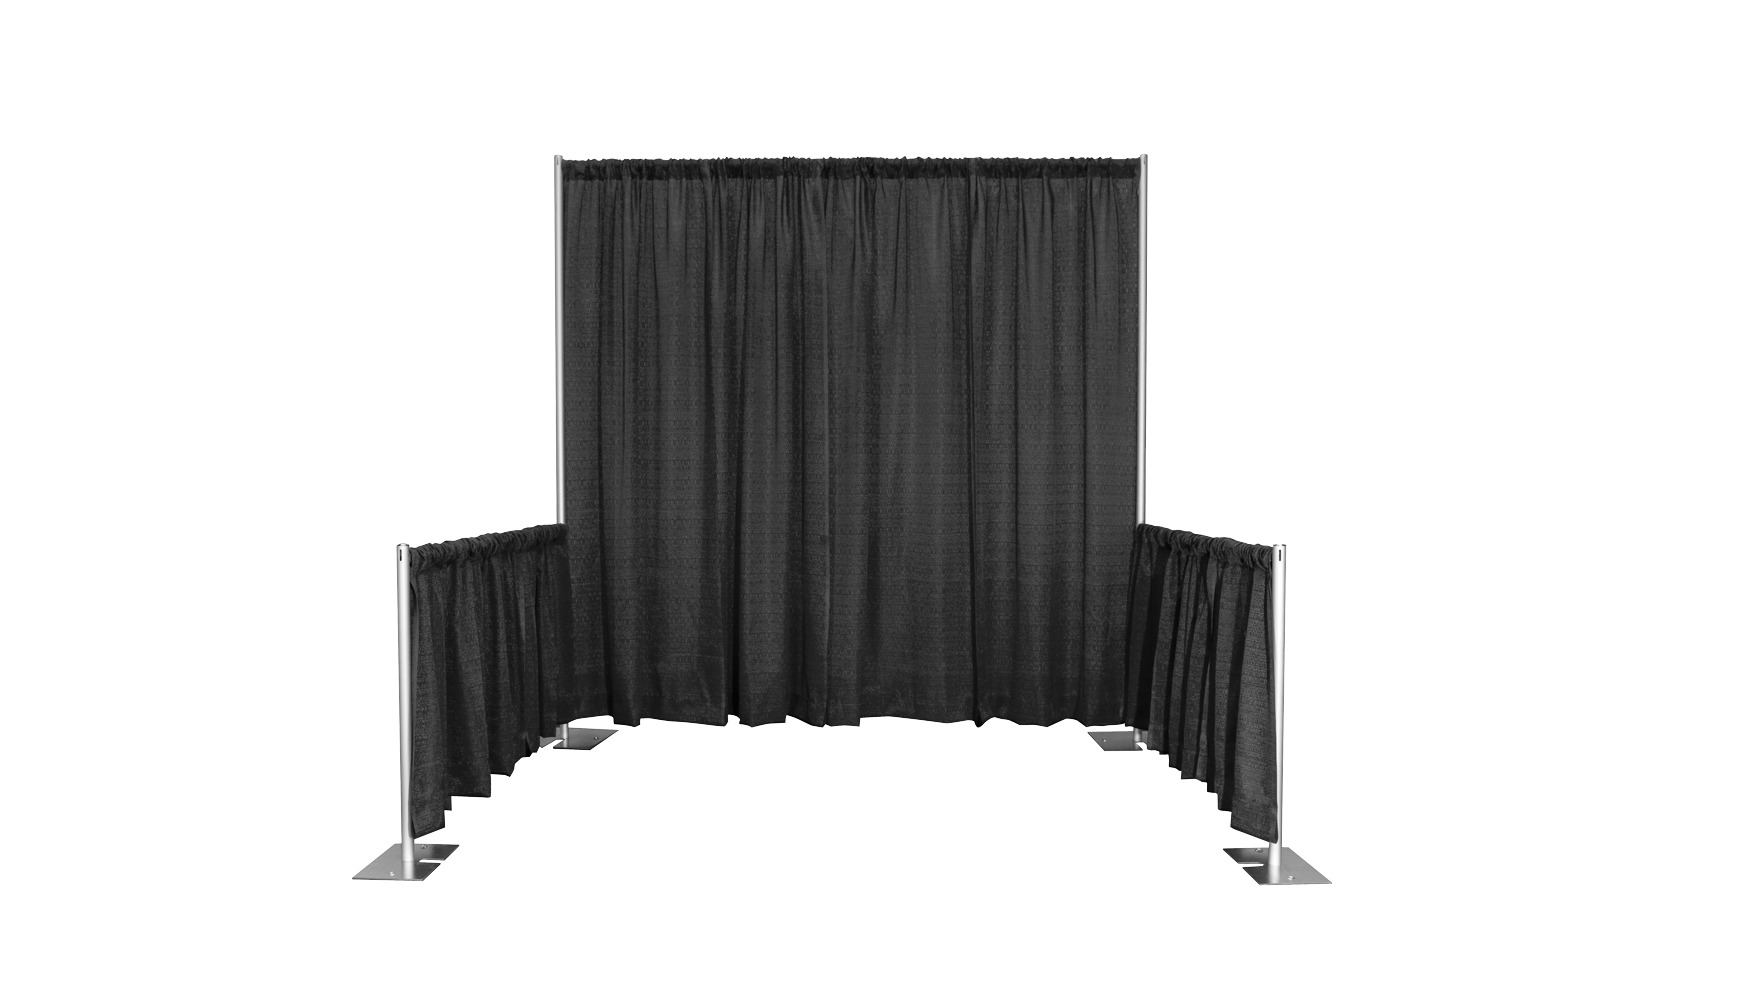 backdrop pipe shop tall pipedrape x conventionexpo grand drape drapes station long rental